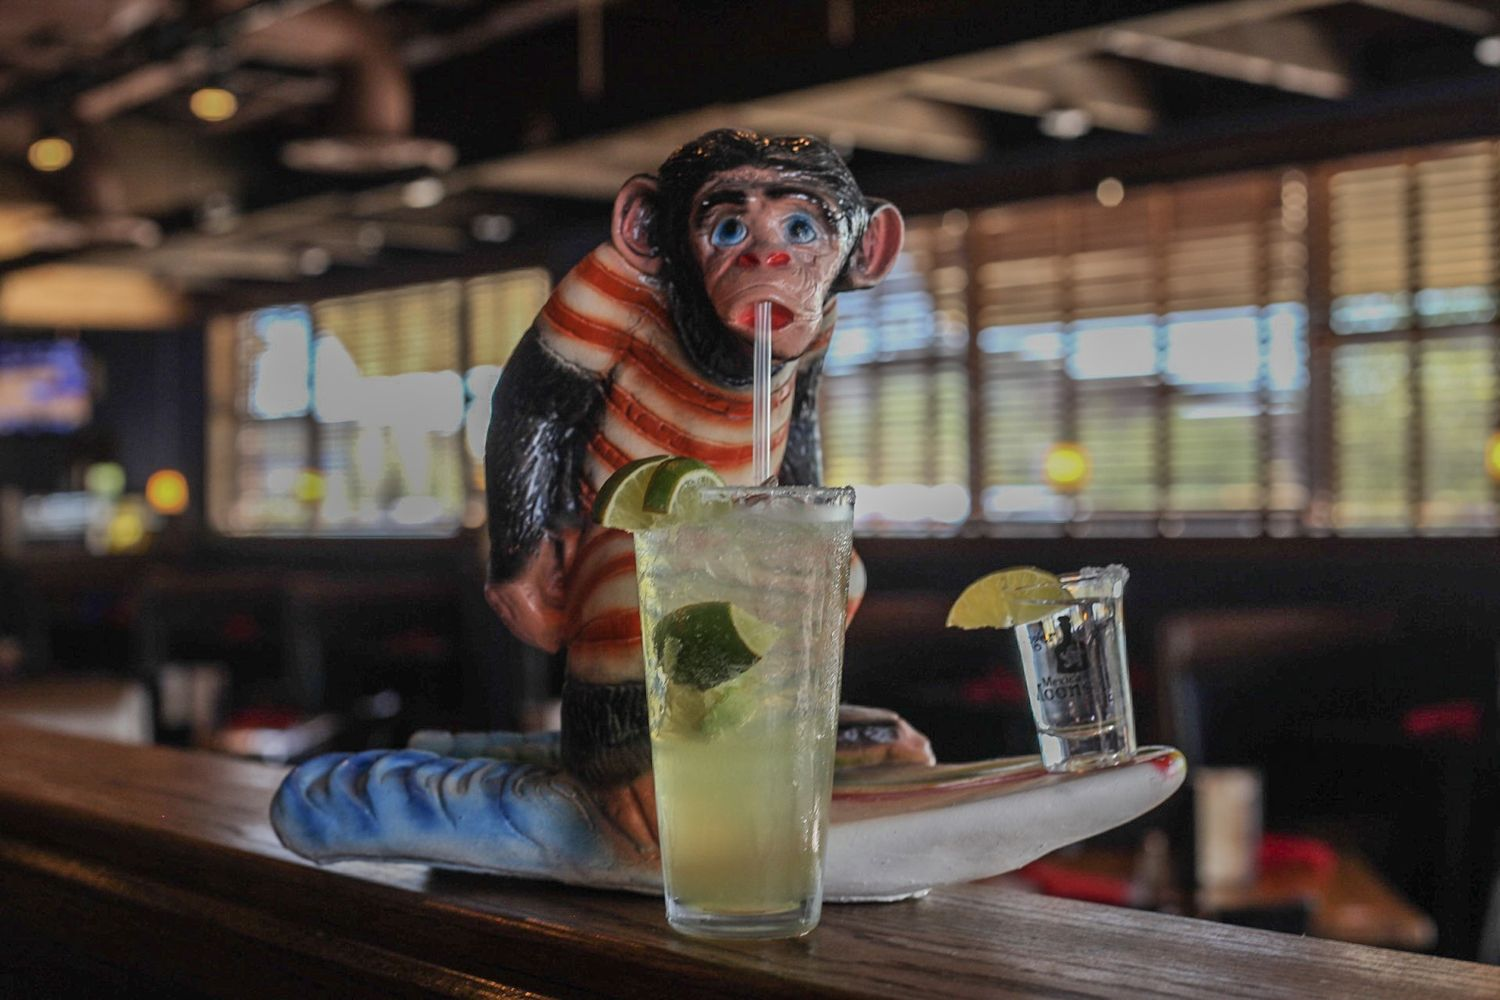 Ginger Monkey Offering Margaritas and Three Street Tacos for $2.40 each on National Tequila Day- Monday, July 24